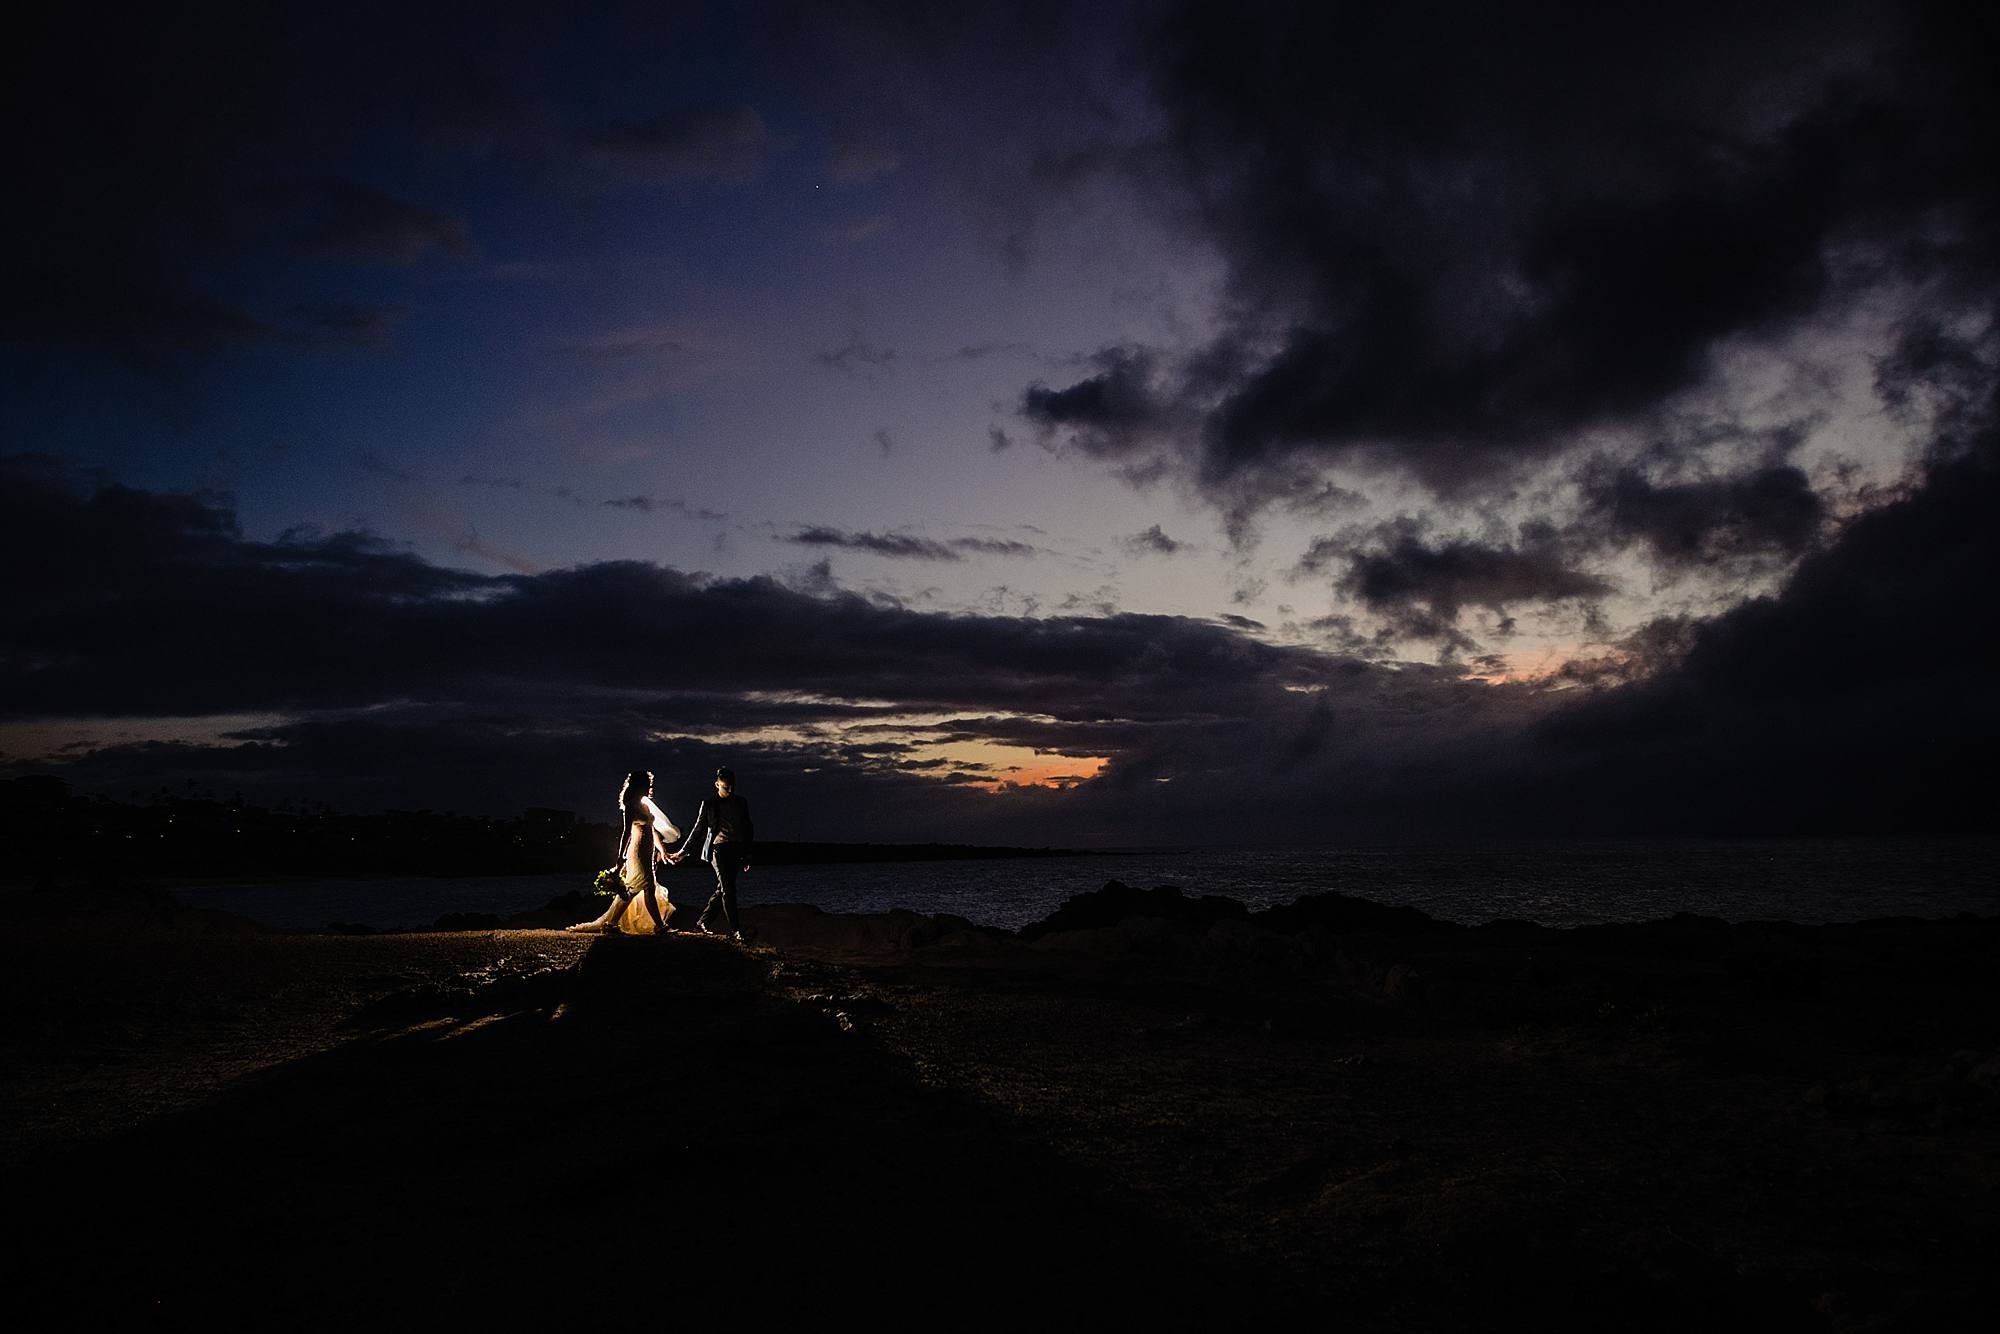 night time portrait in Kapalua, Maui